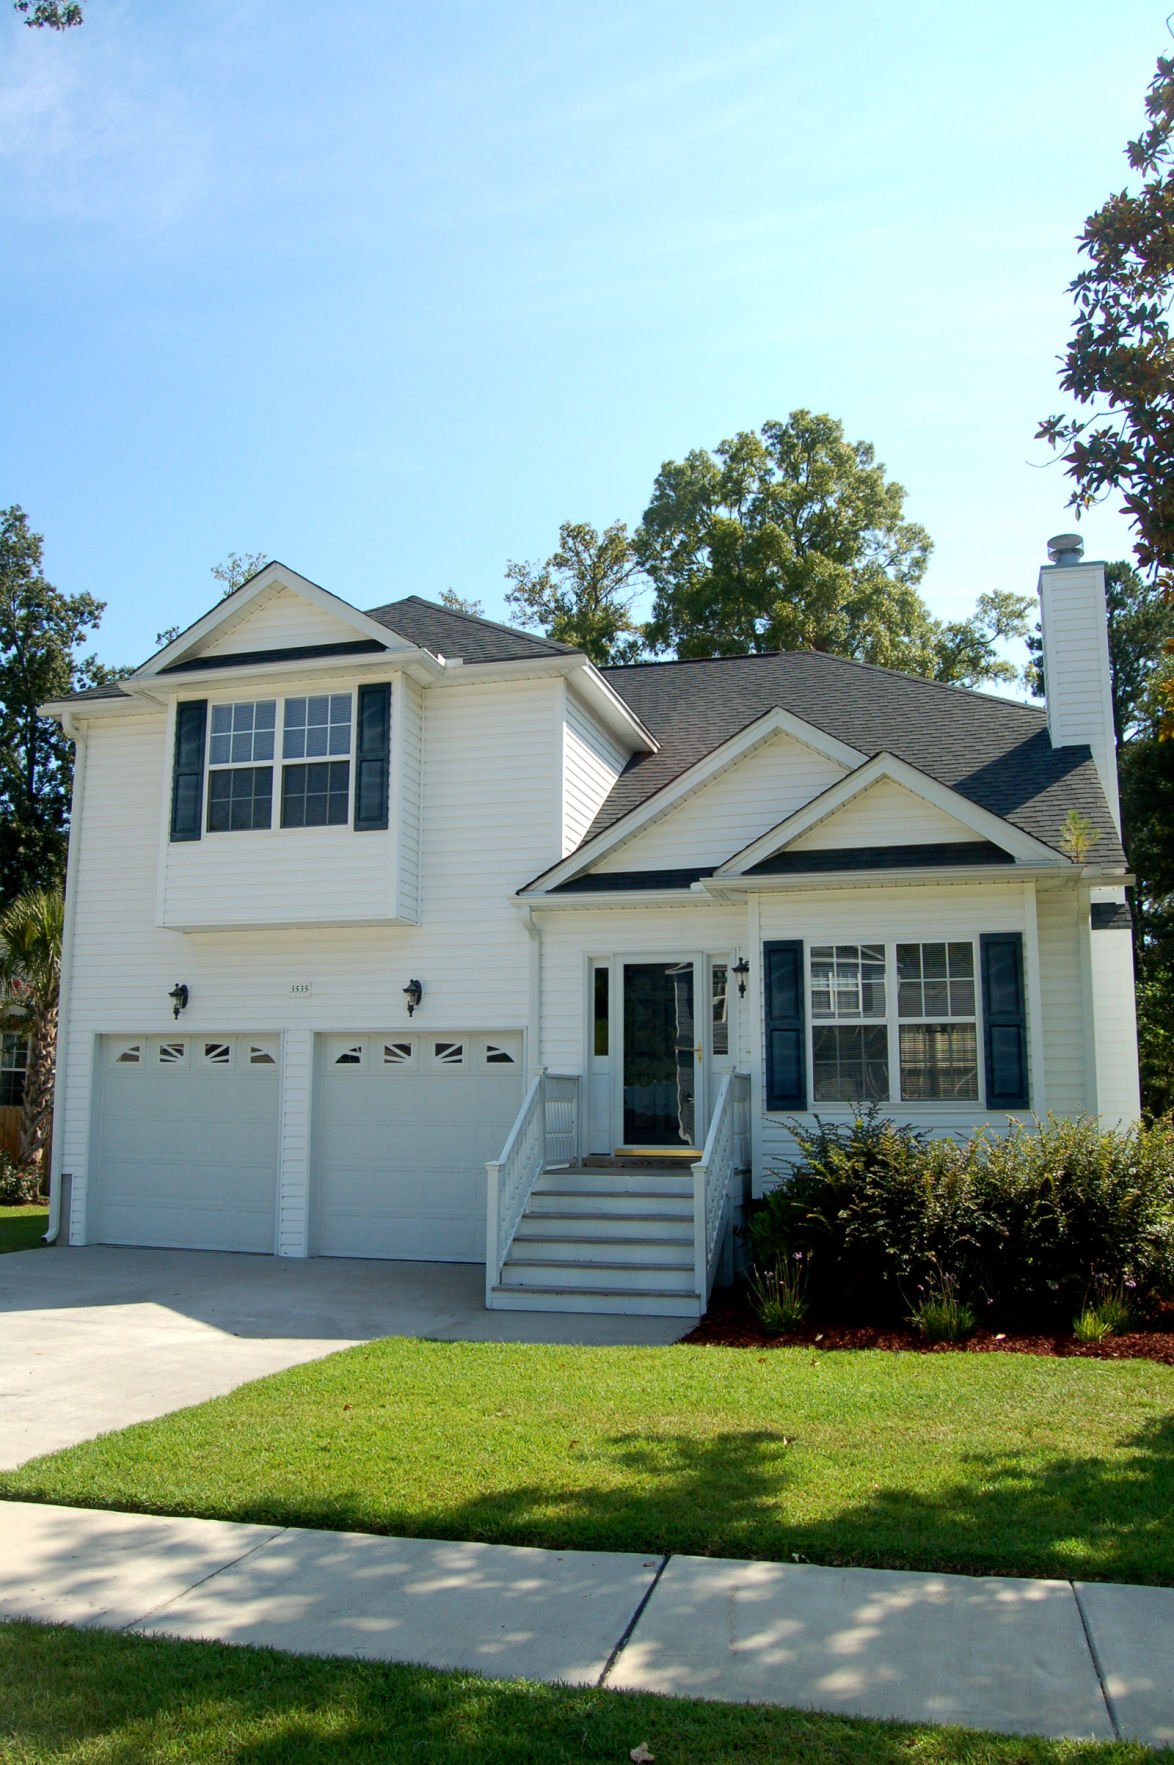 Moderate lease terms, large backyard highlight stylish home on Johns Island